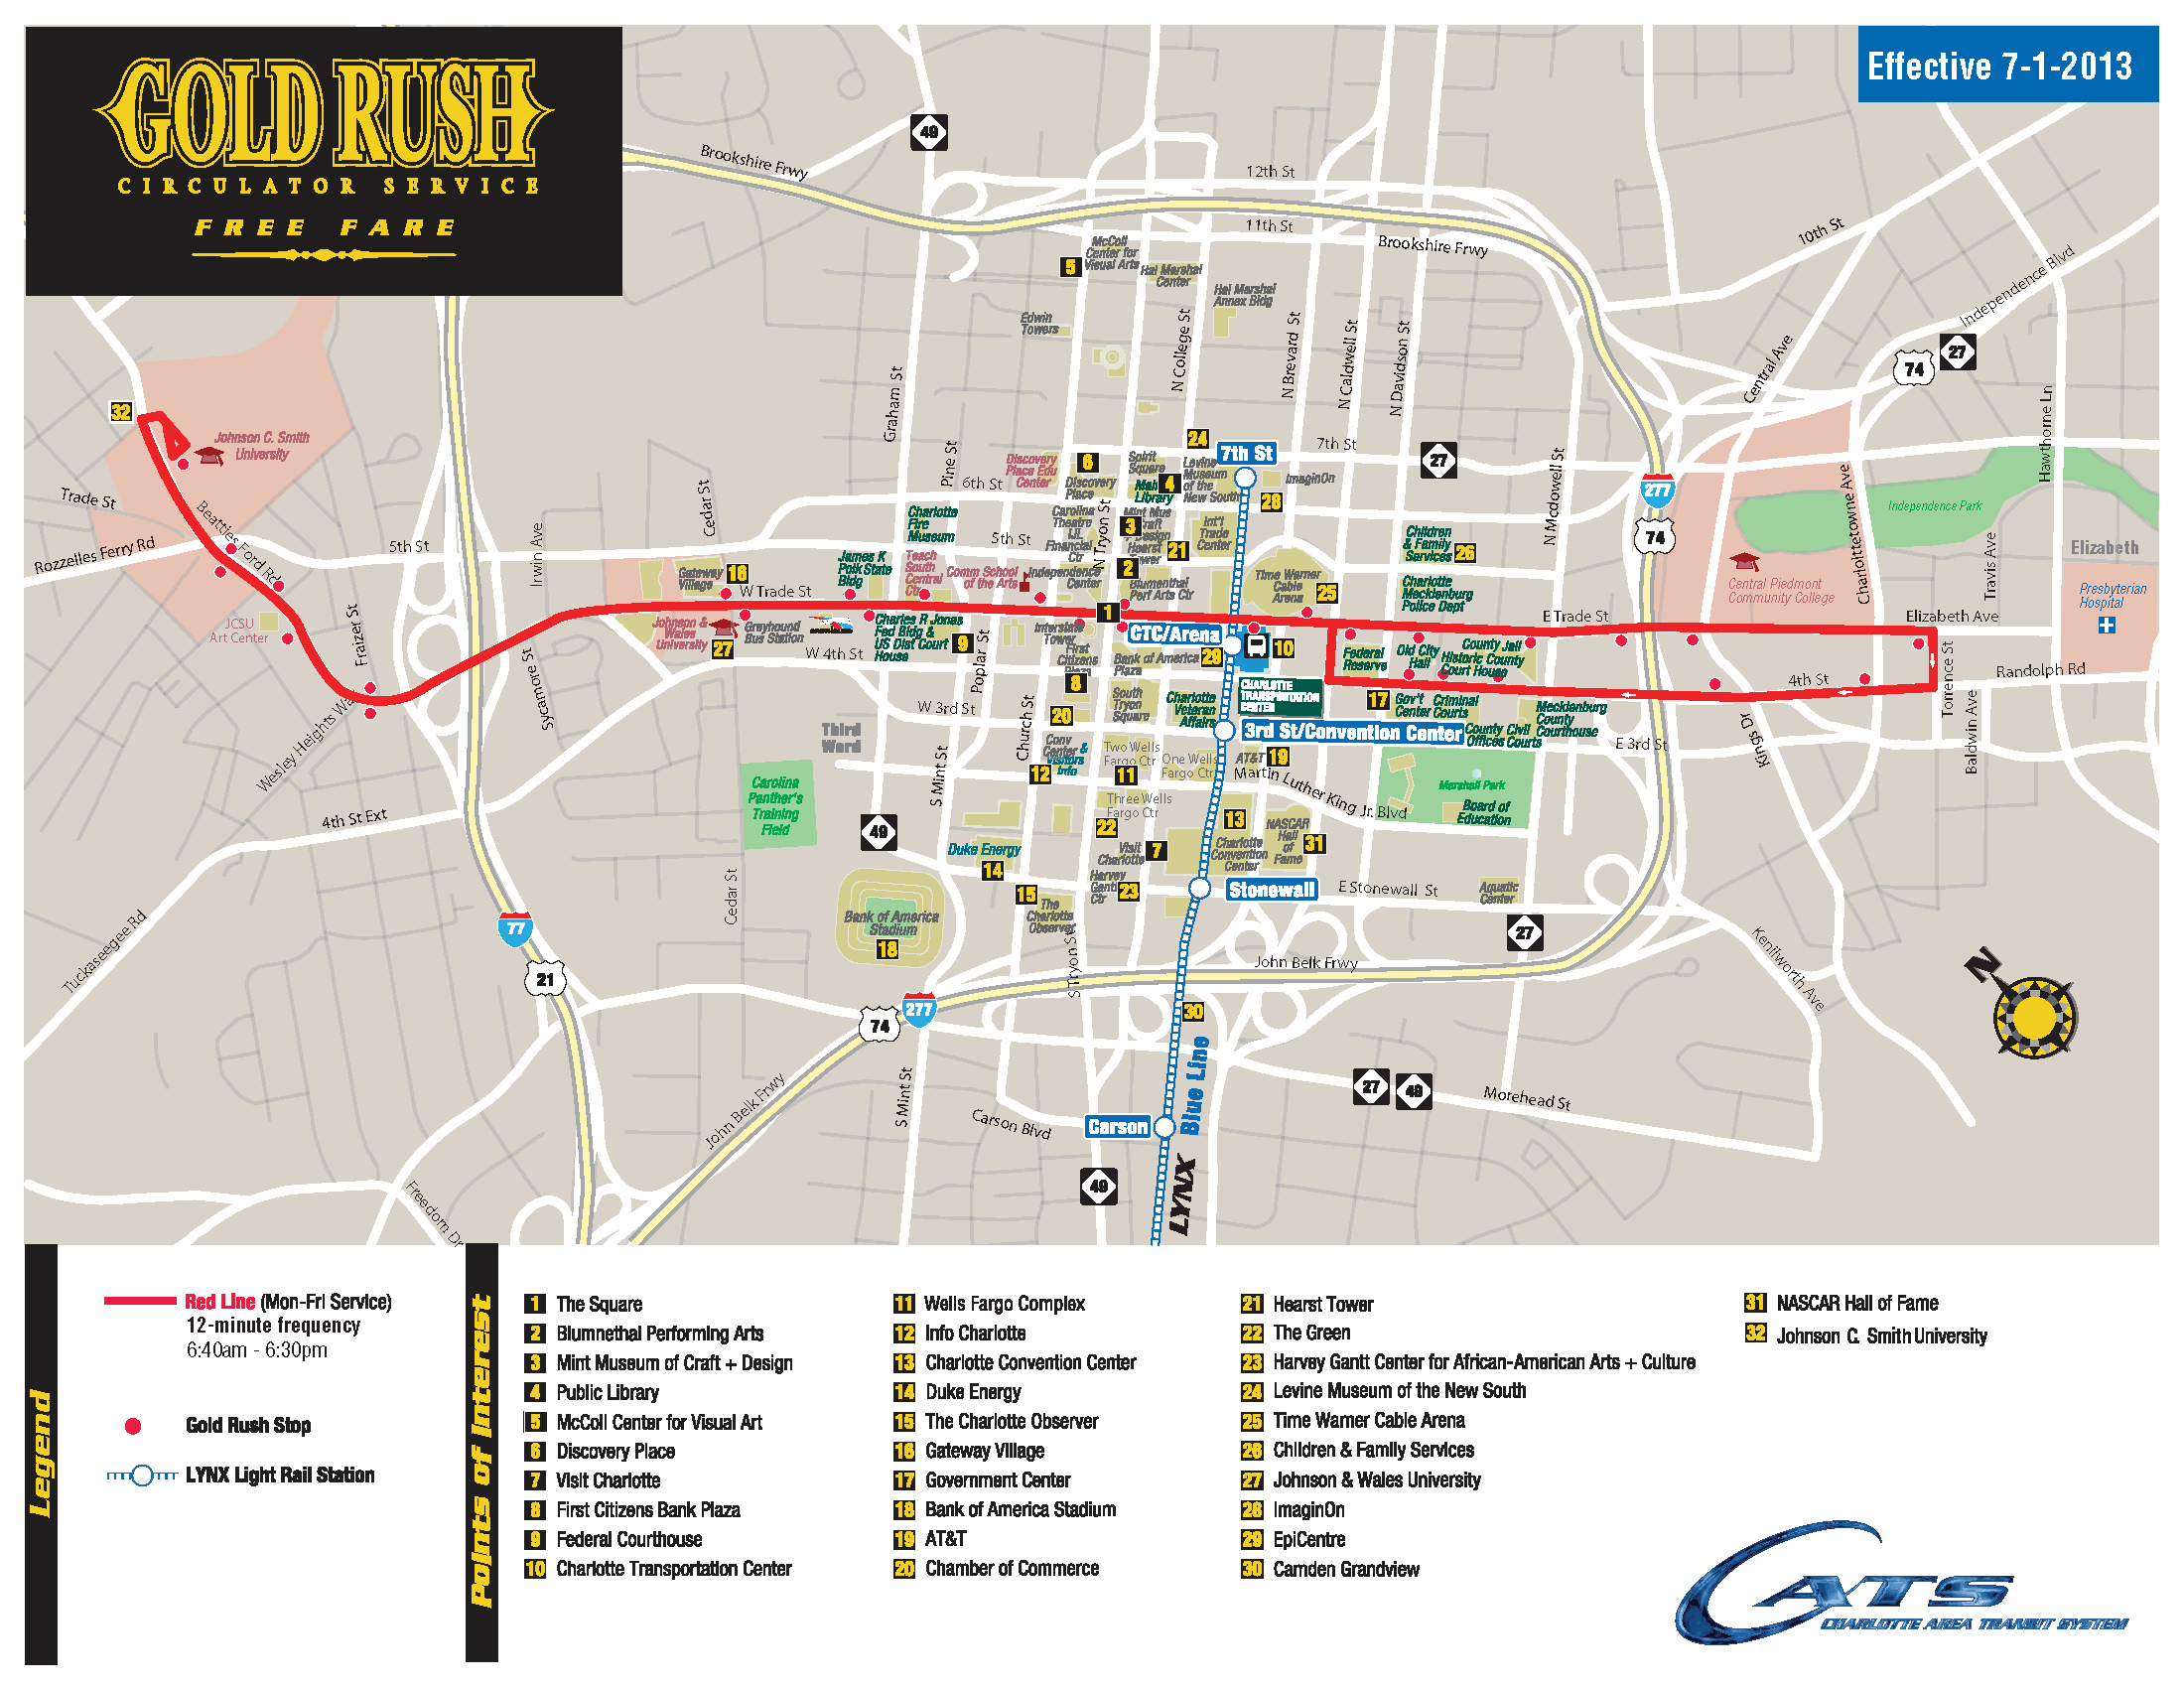 The Gold Rush FREE TROLLEY SERVICE for UPTOWN CHARLOTTE connect